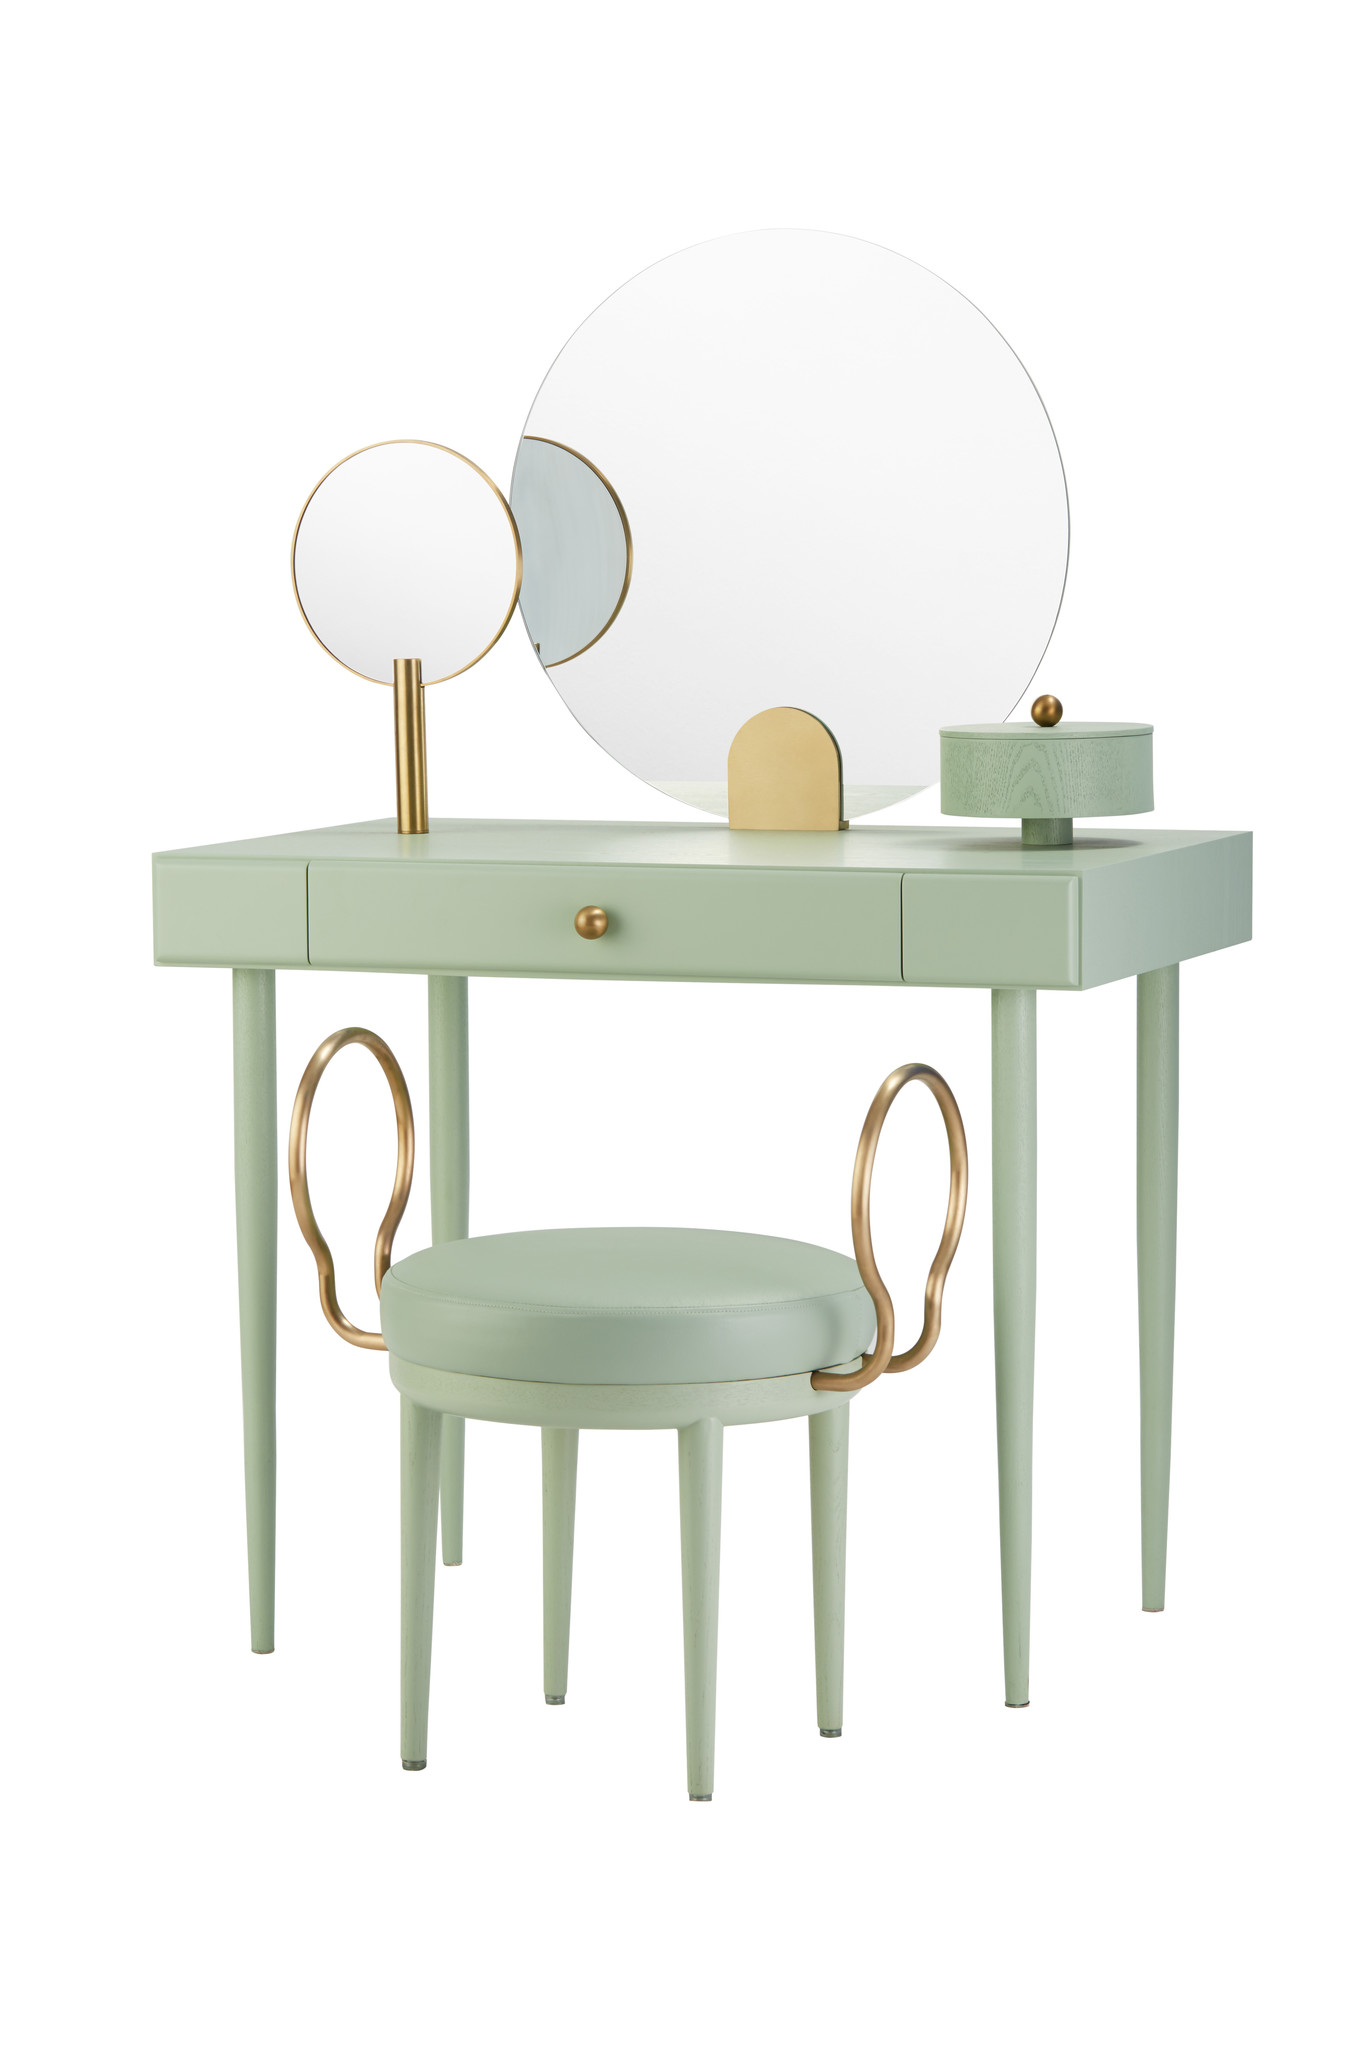 Maison Dada Rose Selavy Vanity Desk and Stool Green Celadon